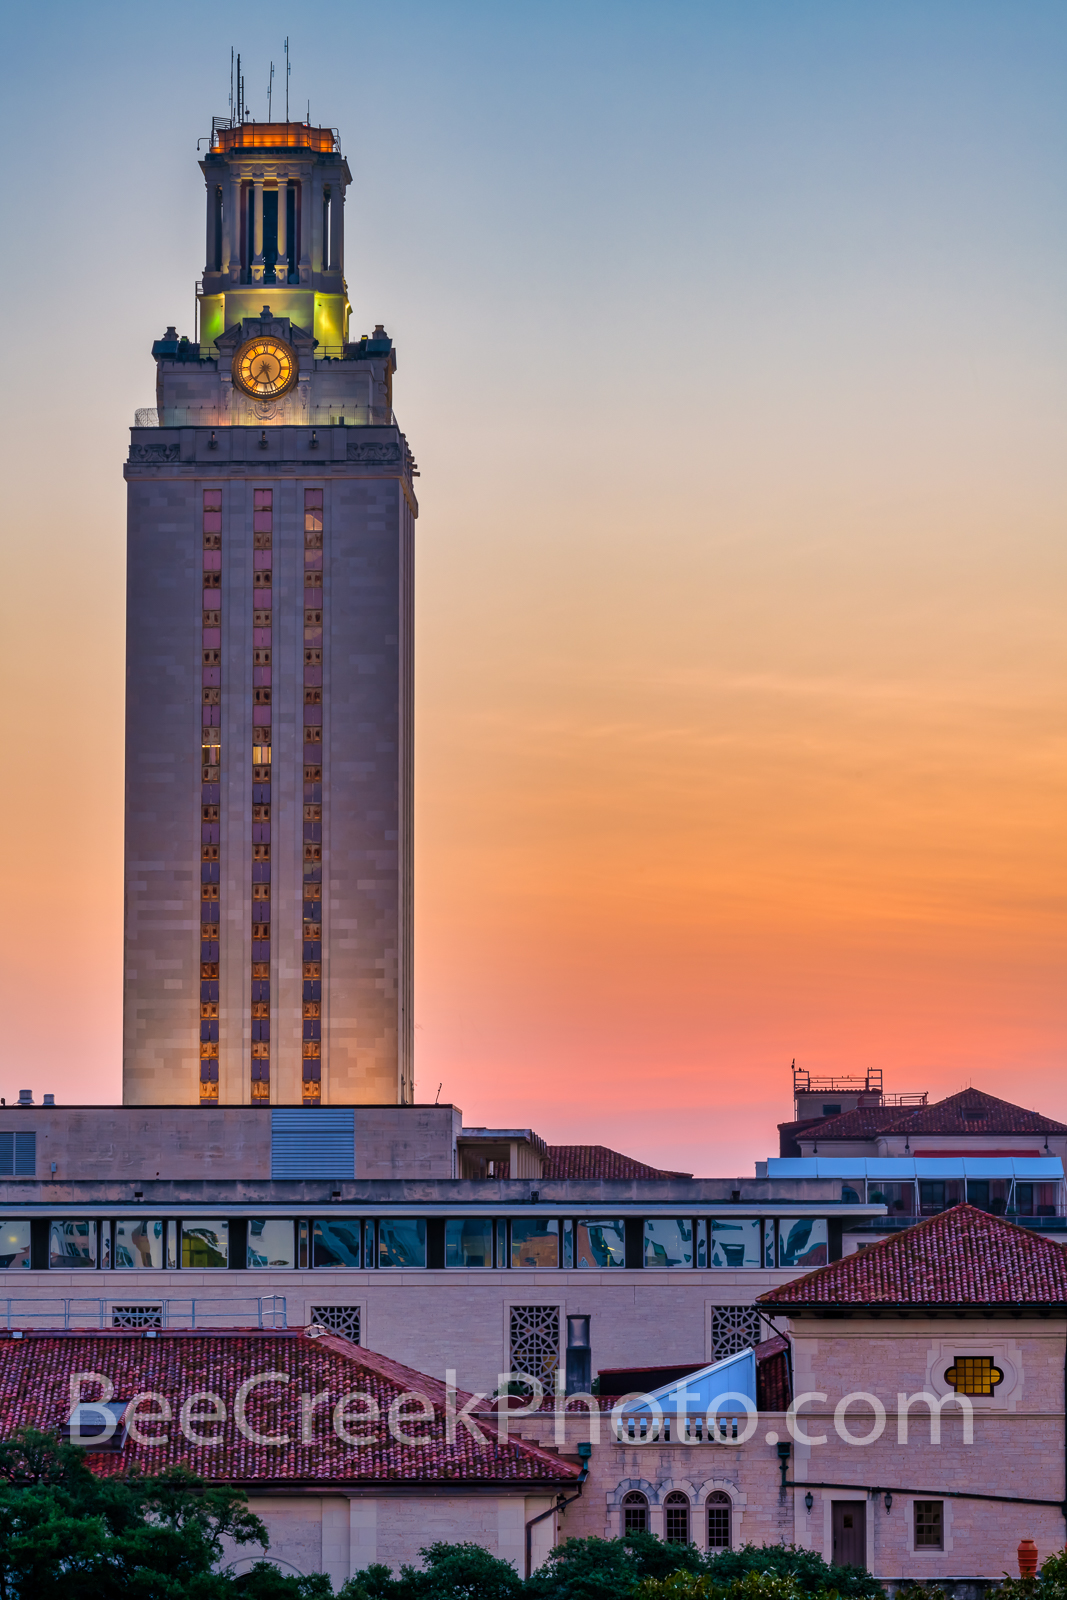 ut tower, texas, austin, austin texas, downtown austin, university of texas, ut austin, student union, darrell k royal, stadium, ut campus, darrell k royal-texas memorial stadium, college, sports, aus, photo